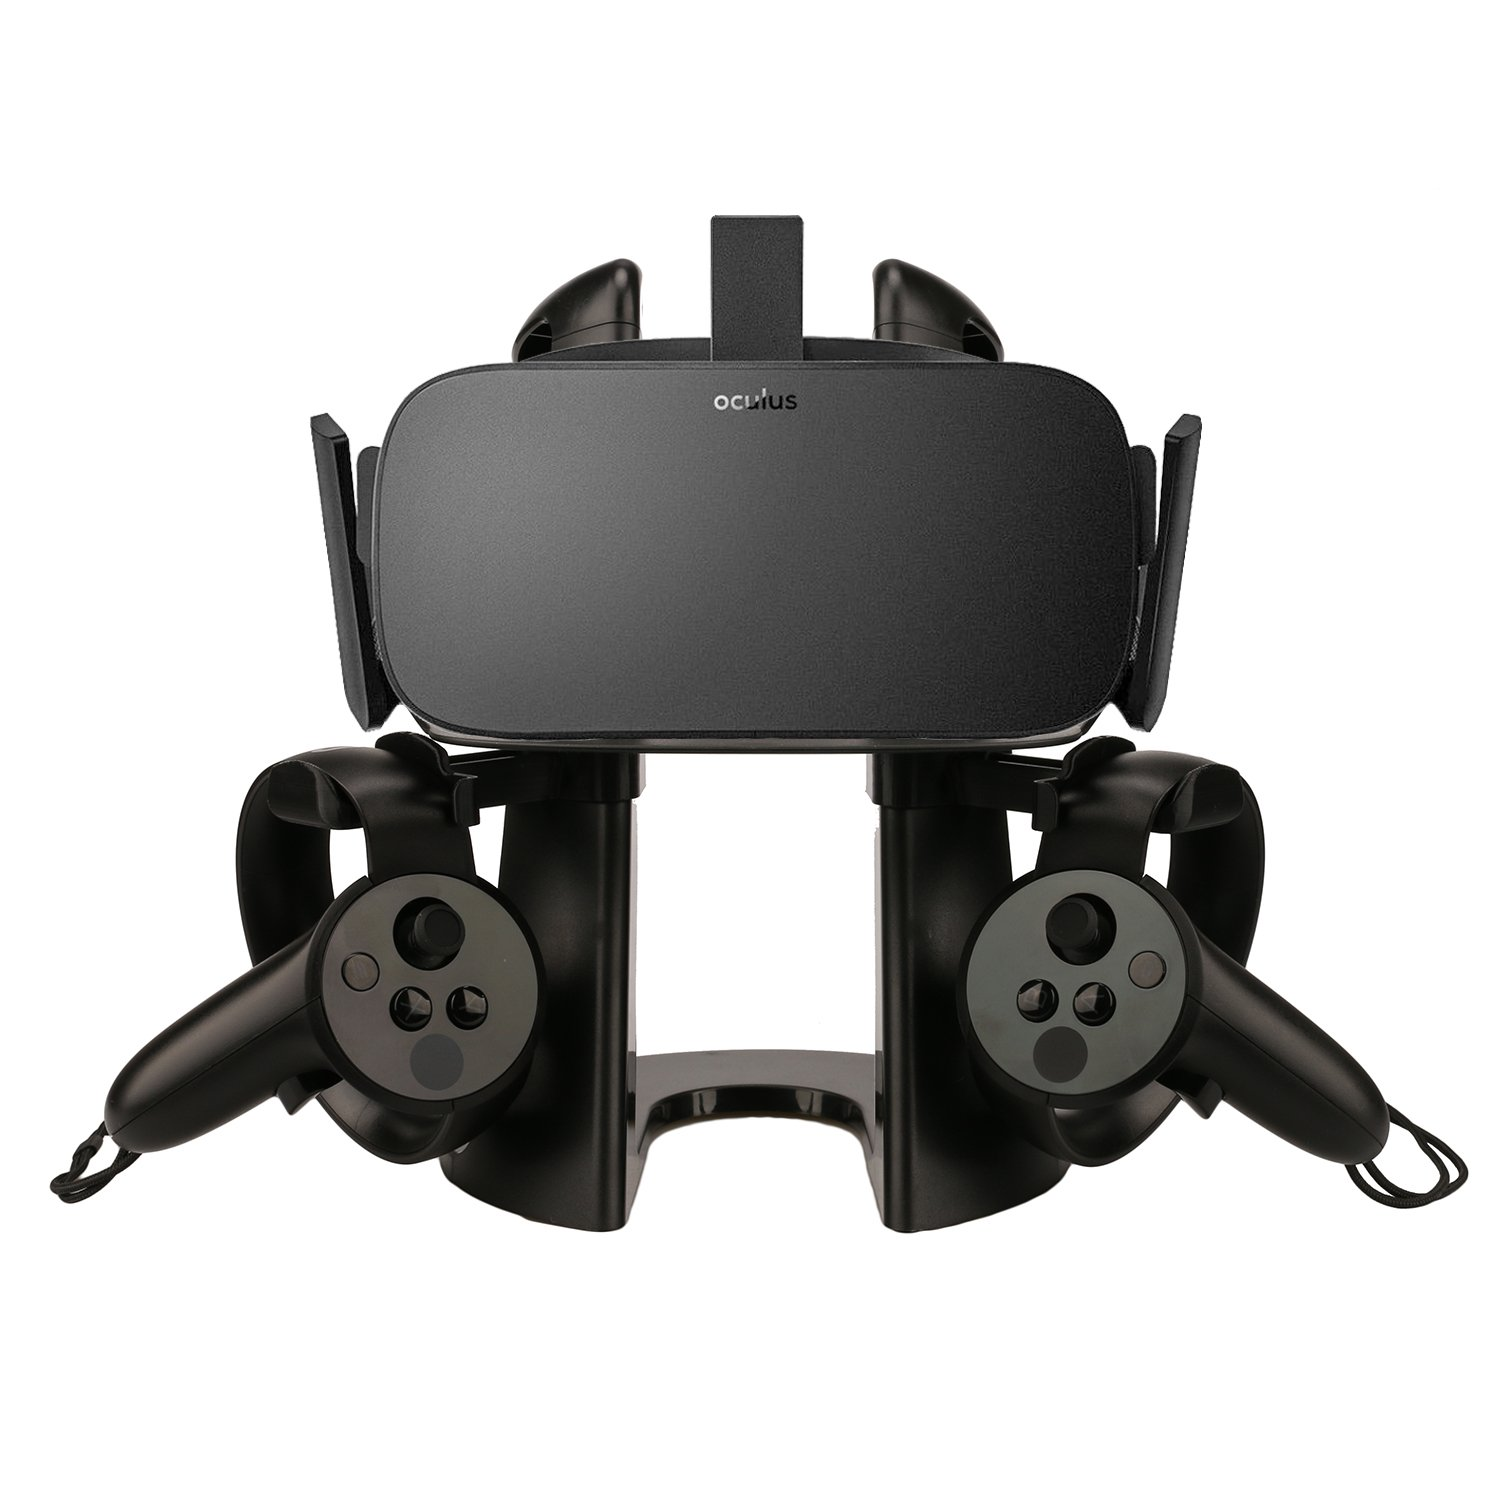 AMVR VR Stand,Headset Display Holder and Controller Mount Station for Oculus Quest, Quest 2, Rift or Rift S Headset and…